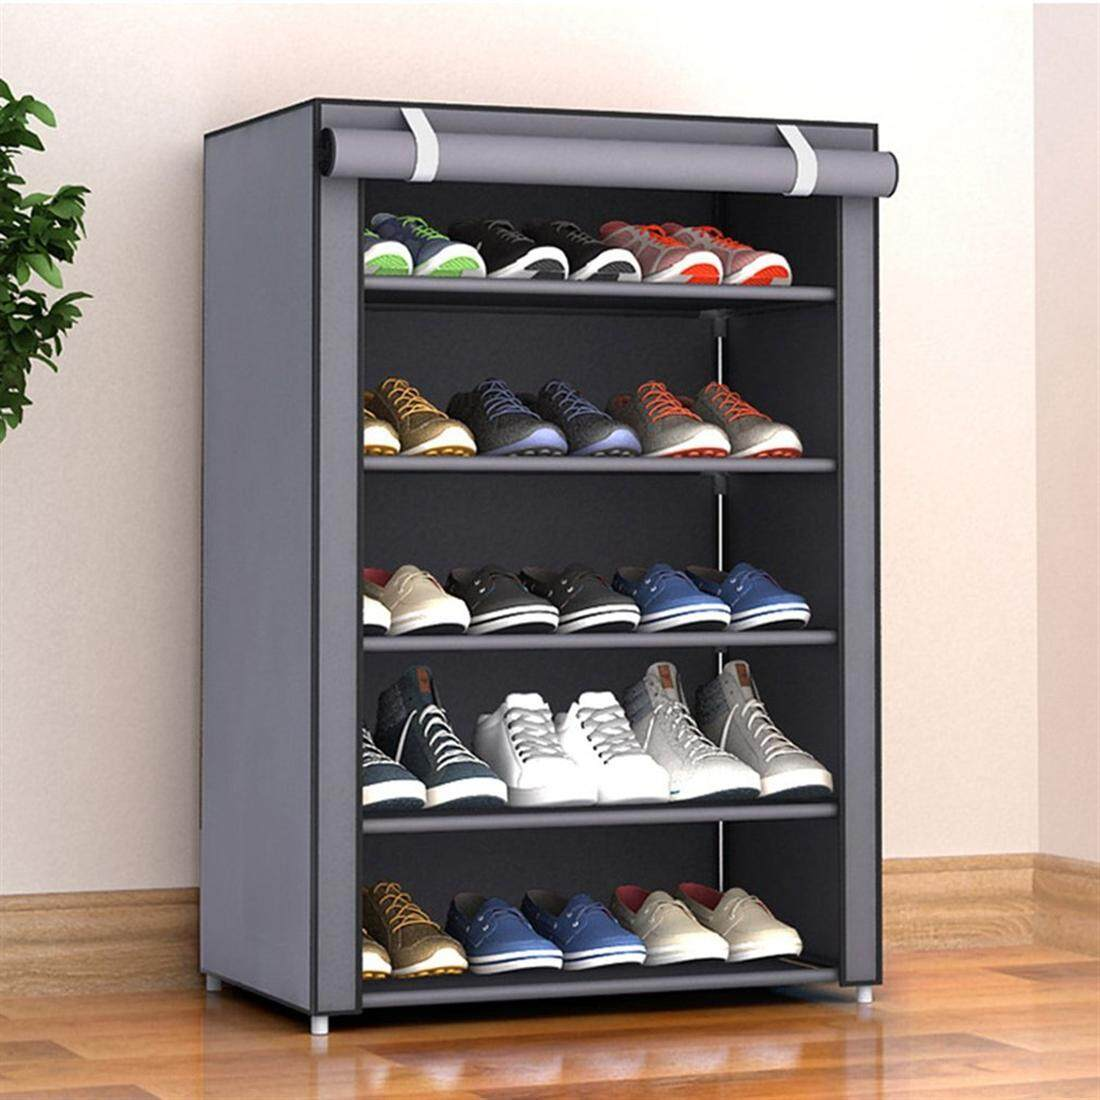 Dust-proof 30*60*90cm  6layers5lattice Non-Woven Fabric Shoes Rack Shoes Organizer Bedroom Home Decoration Shoe Storage with Cover